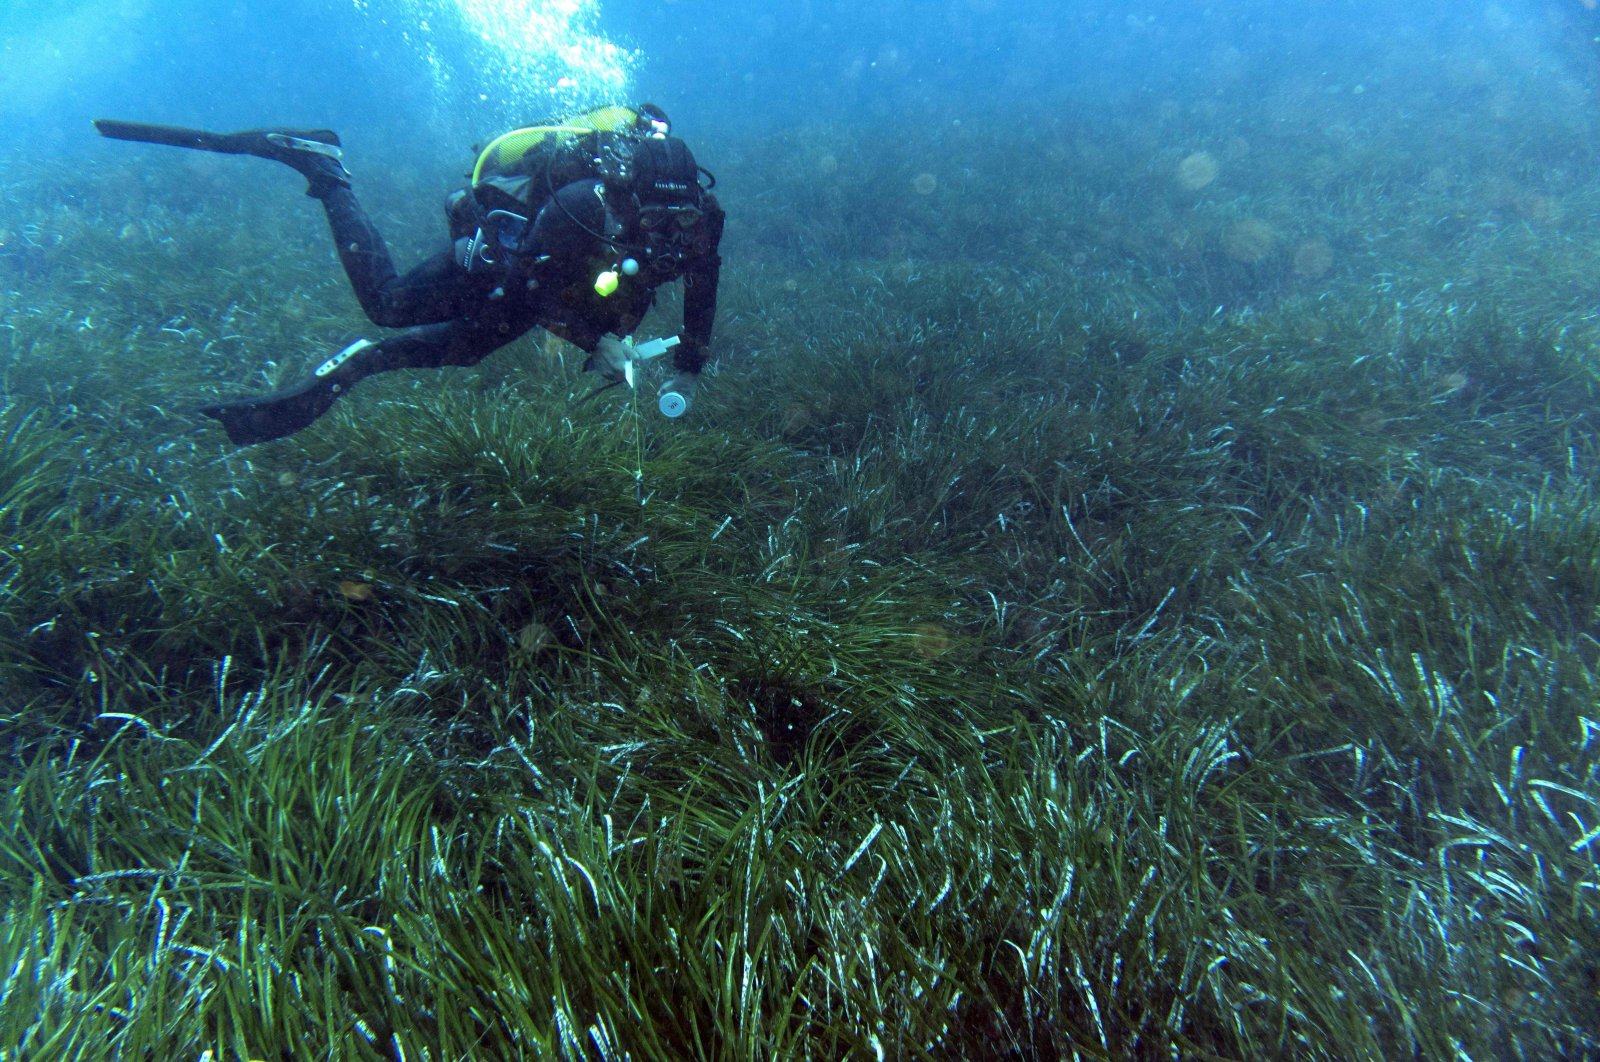 A diver swims over posidonia oceanica meadows in the Mediterranean Sea near Cannes, France, May 20, 2019. (AFP File Photo)